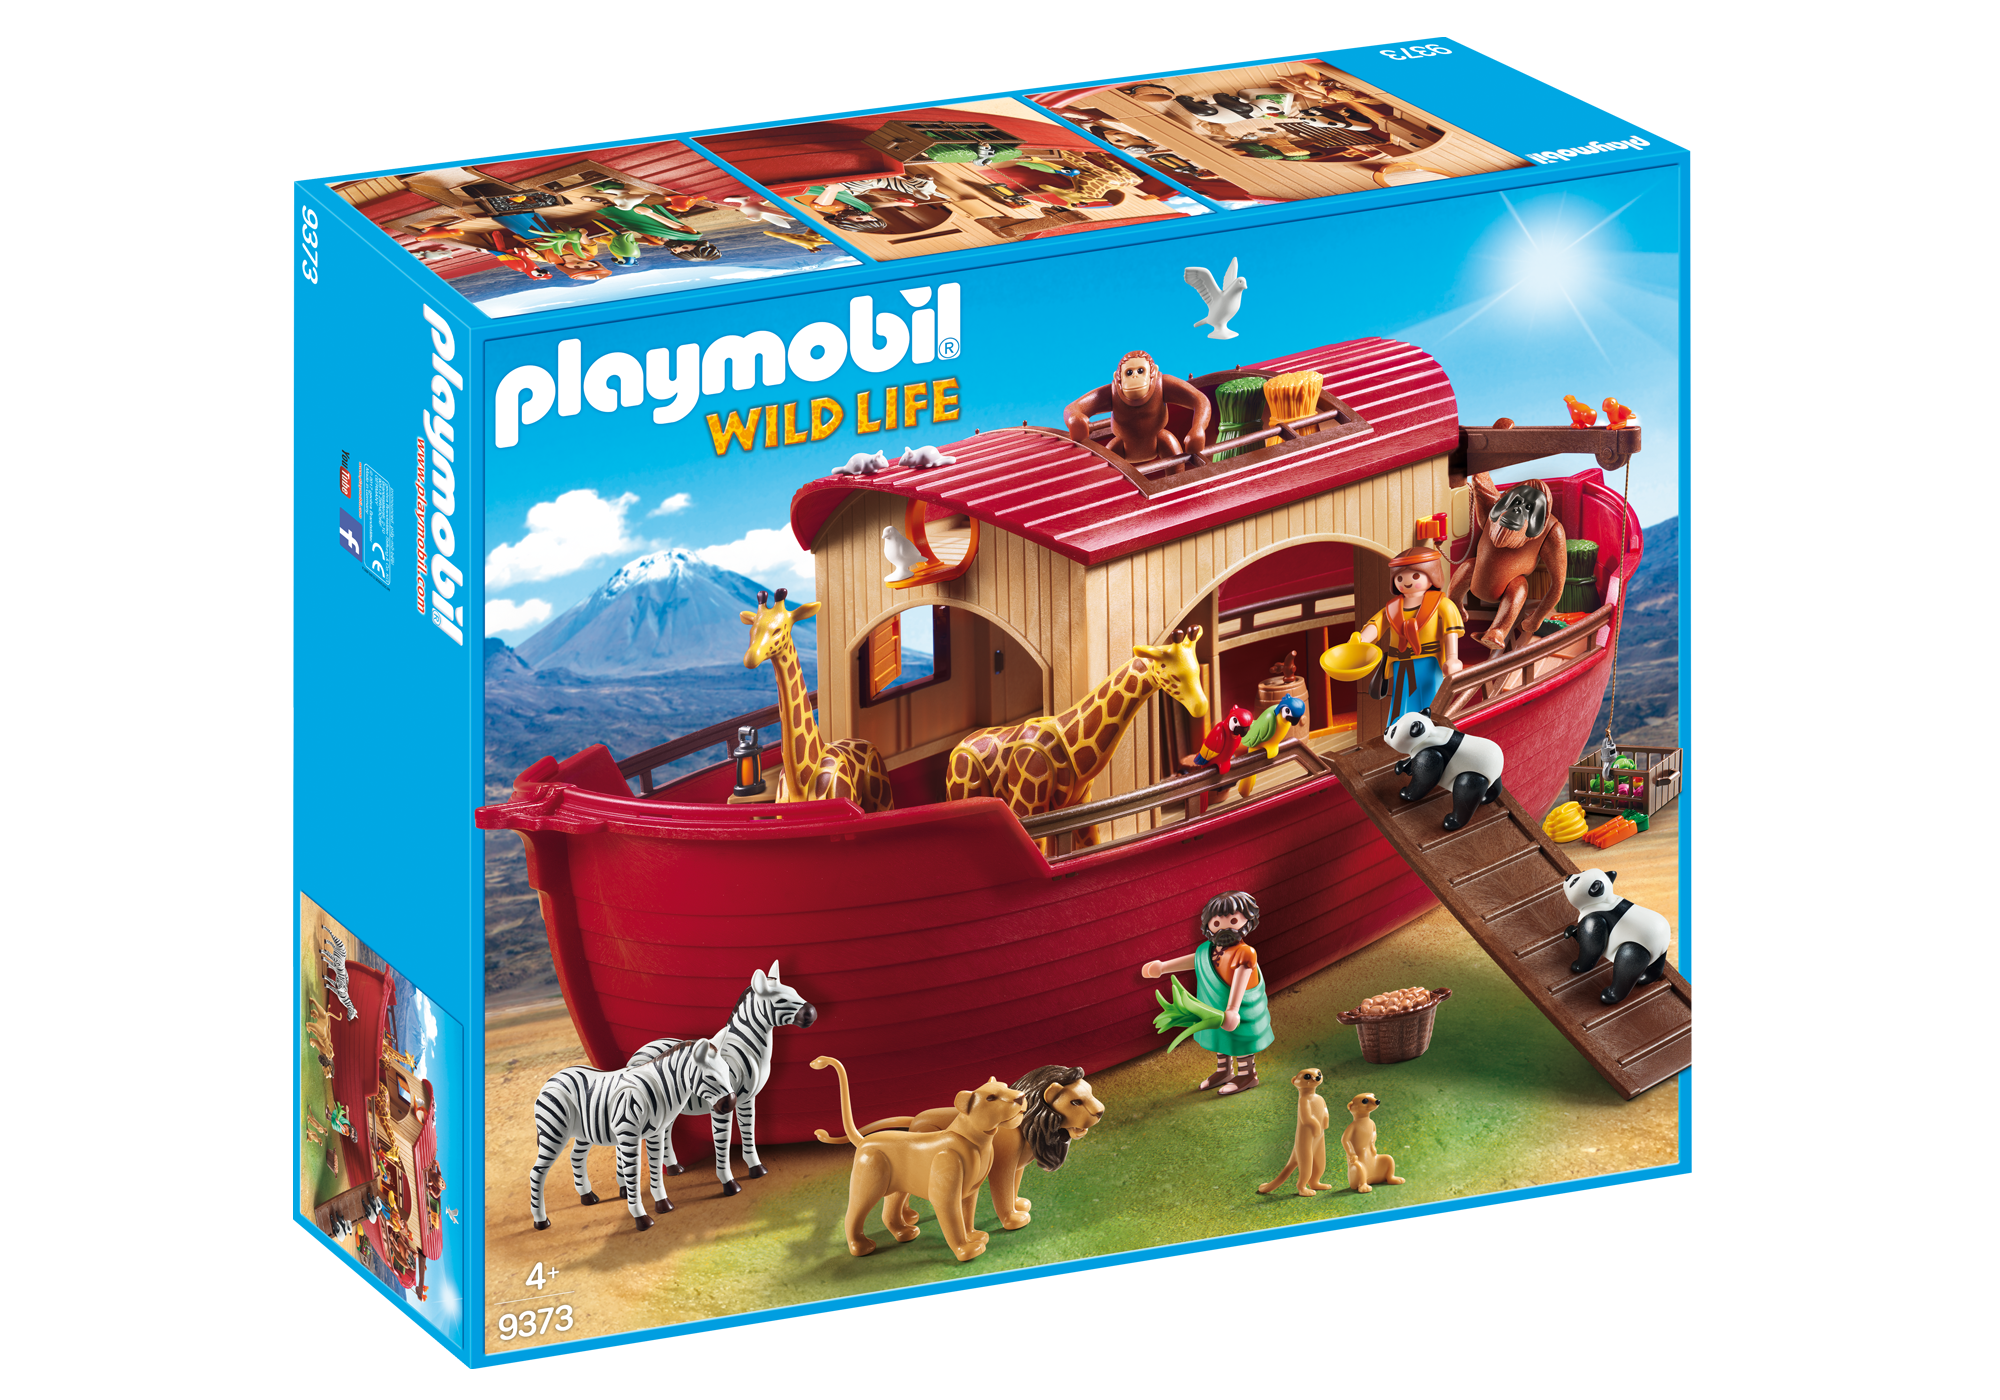 http://media.playmobil.com/i/playmobil/9373_product_box_front